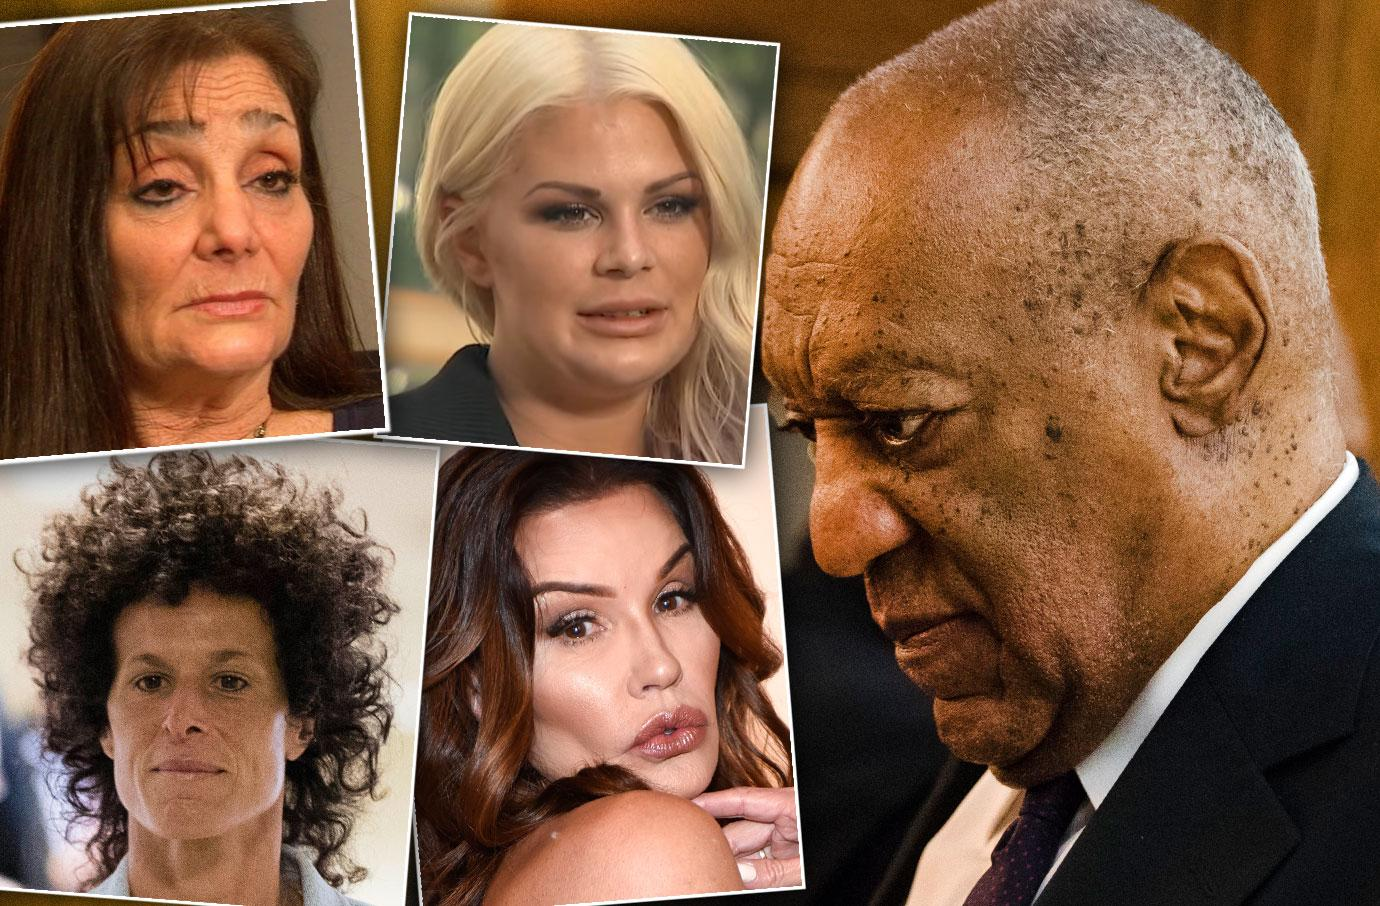 Bill Cosby Trial - Inside The Most Sordid Sexual Assault Accusations